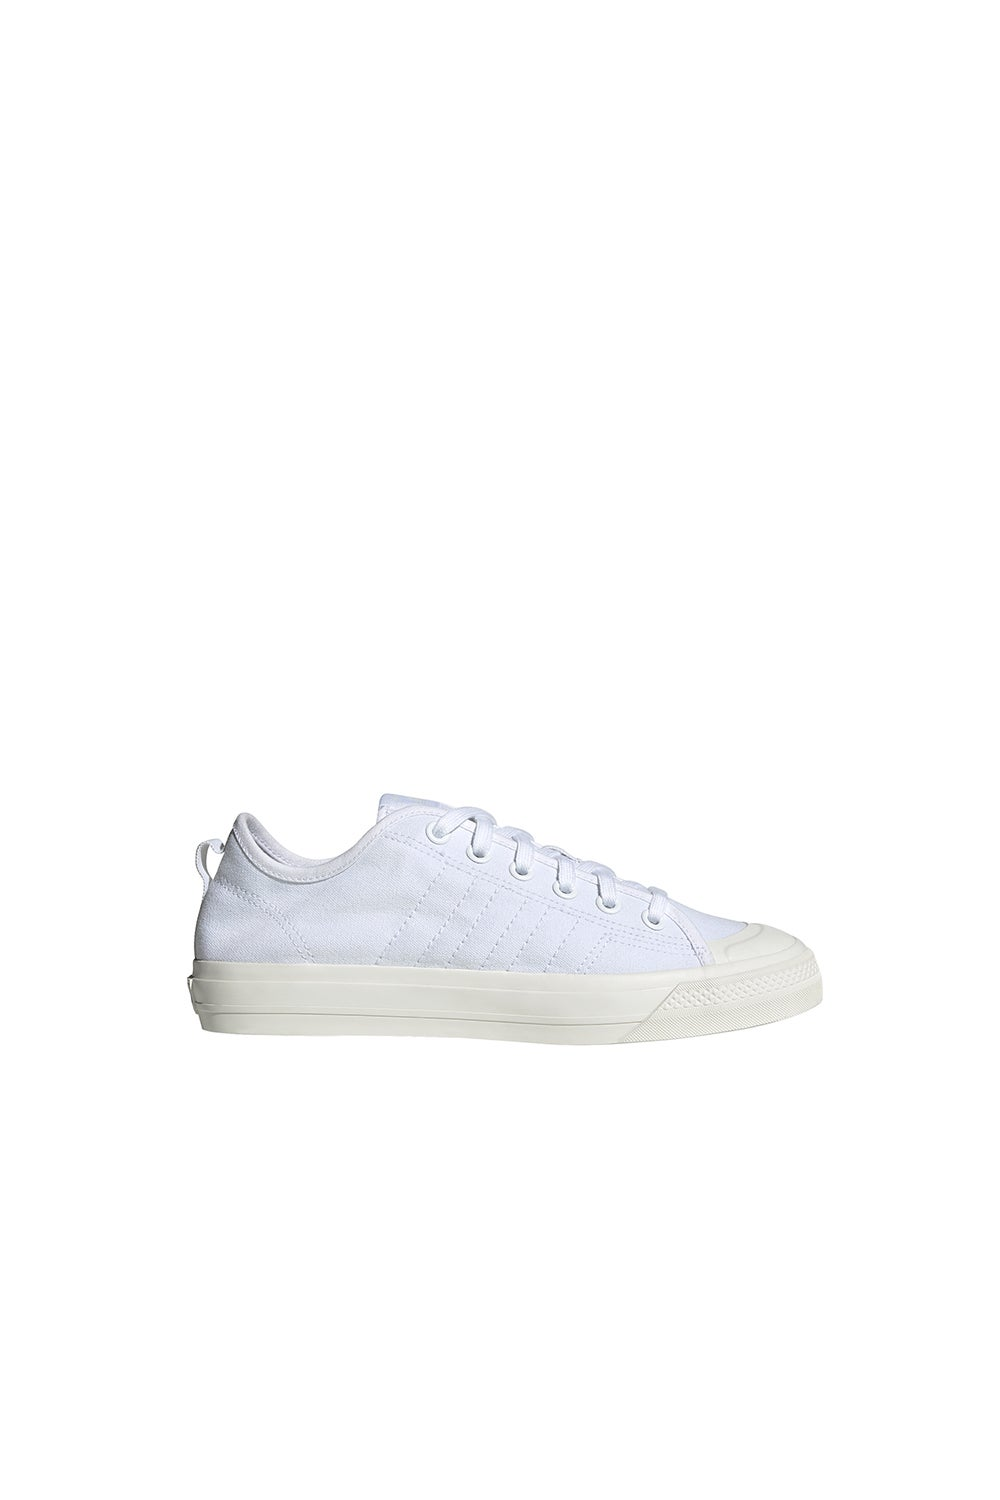 adidas Nizza RF Shoes White